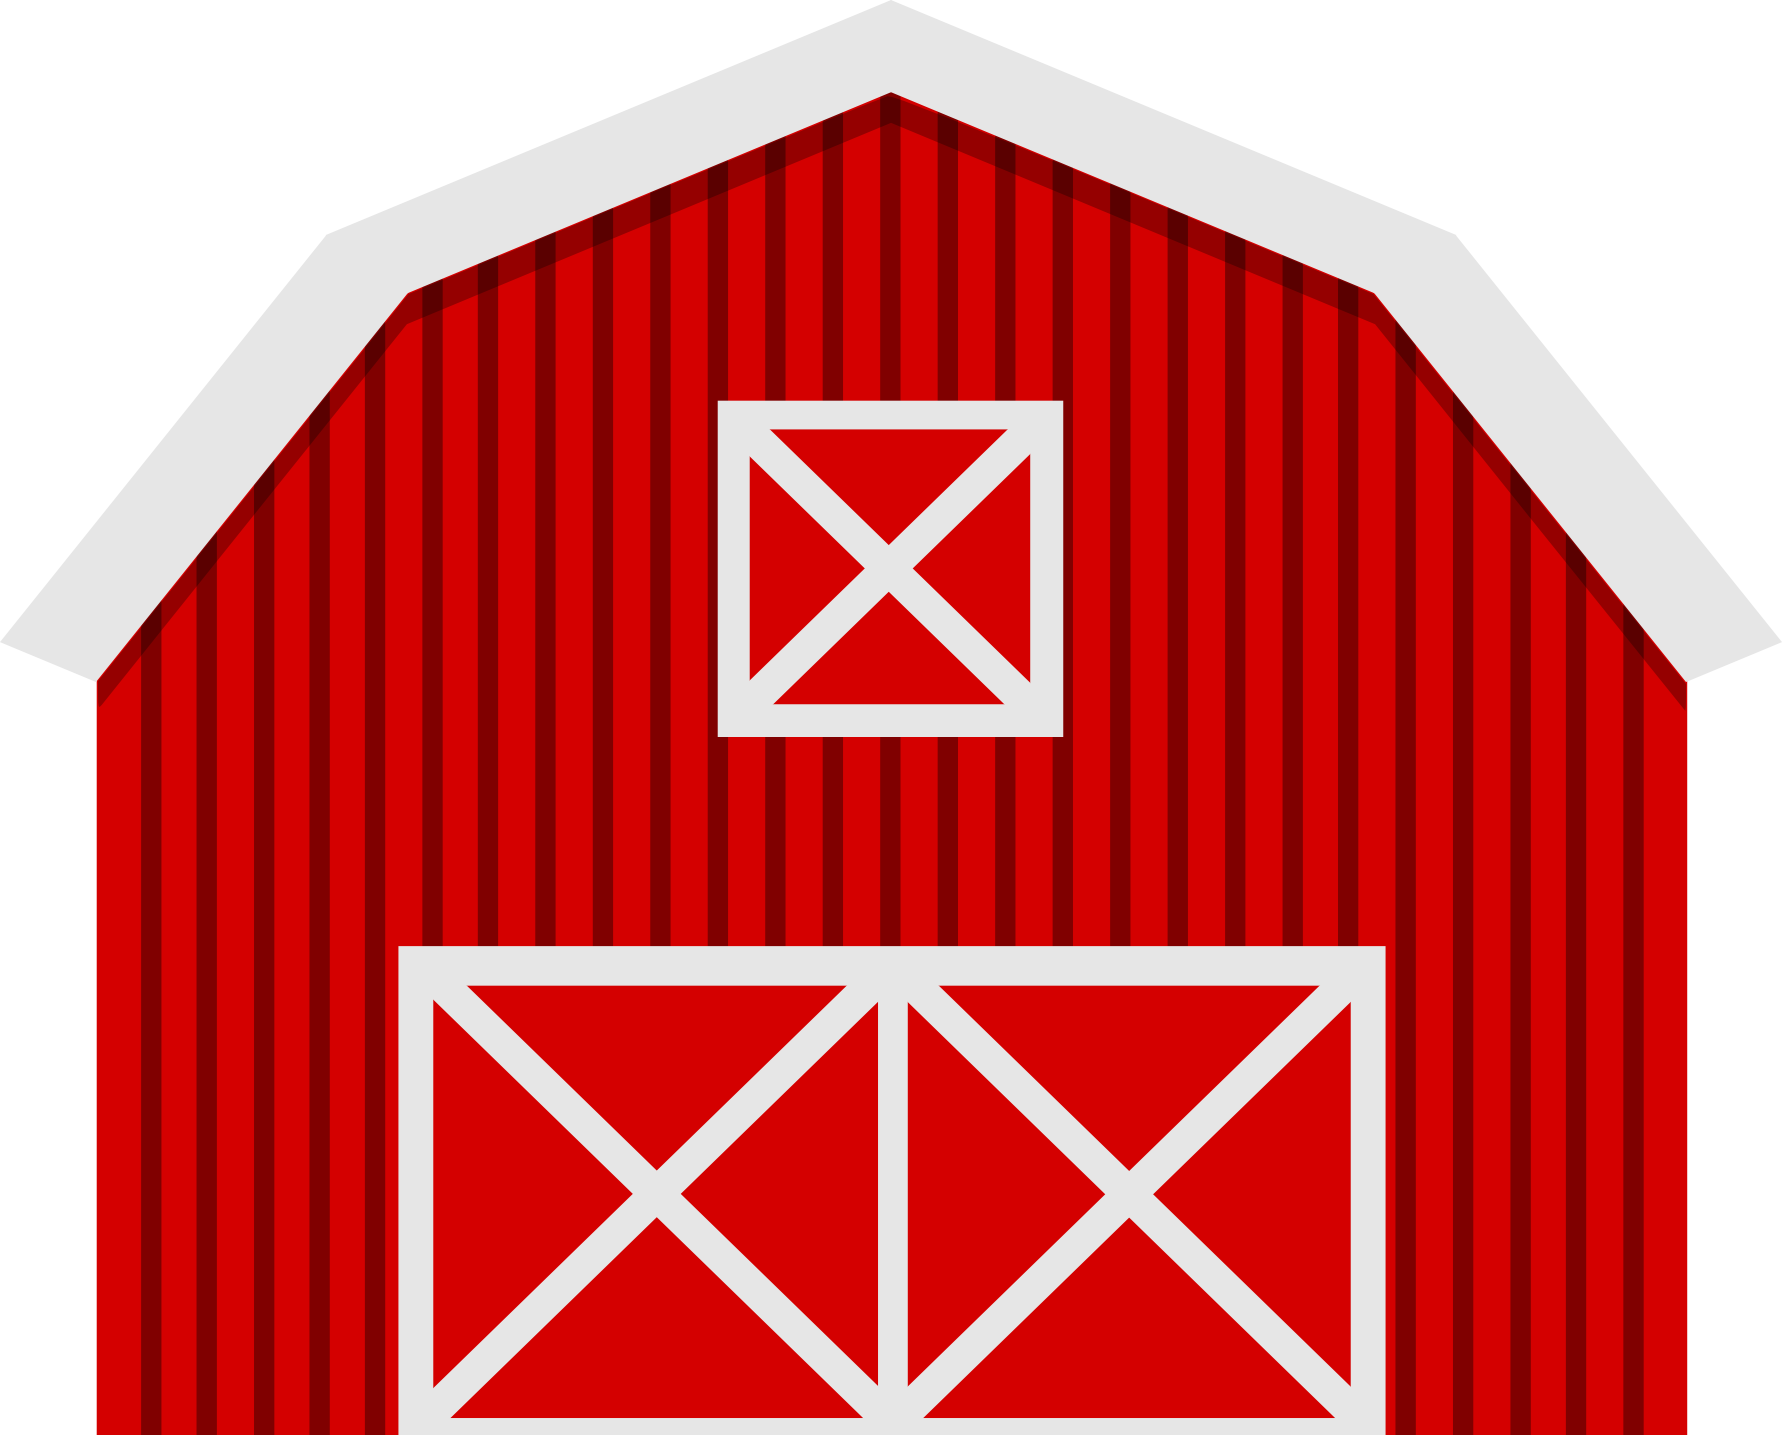 Farmhouse clipart big red barn. On the farm clip